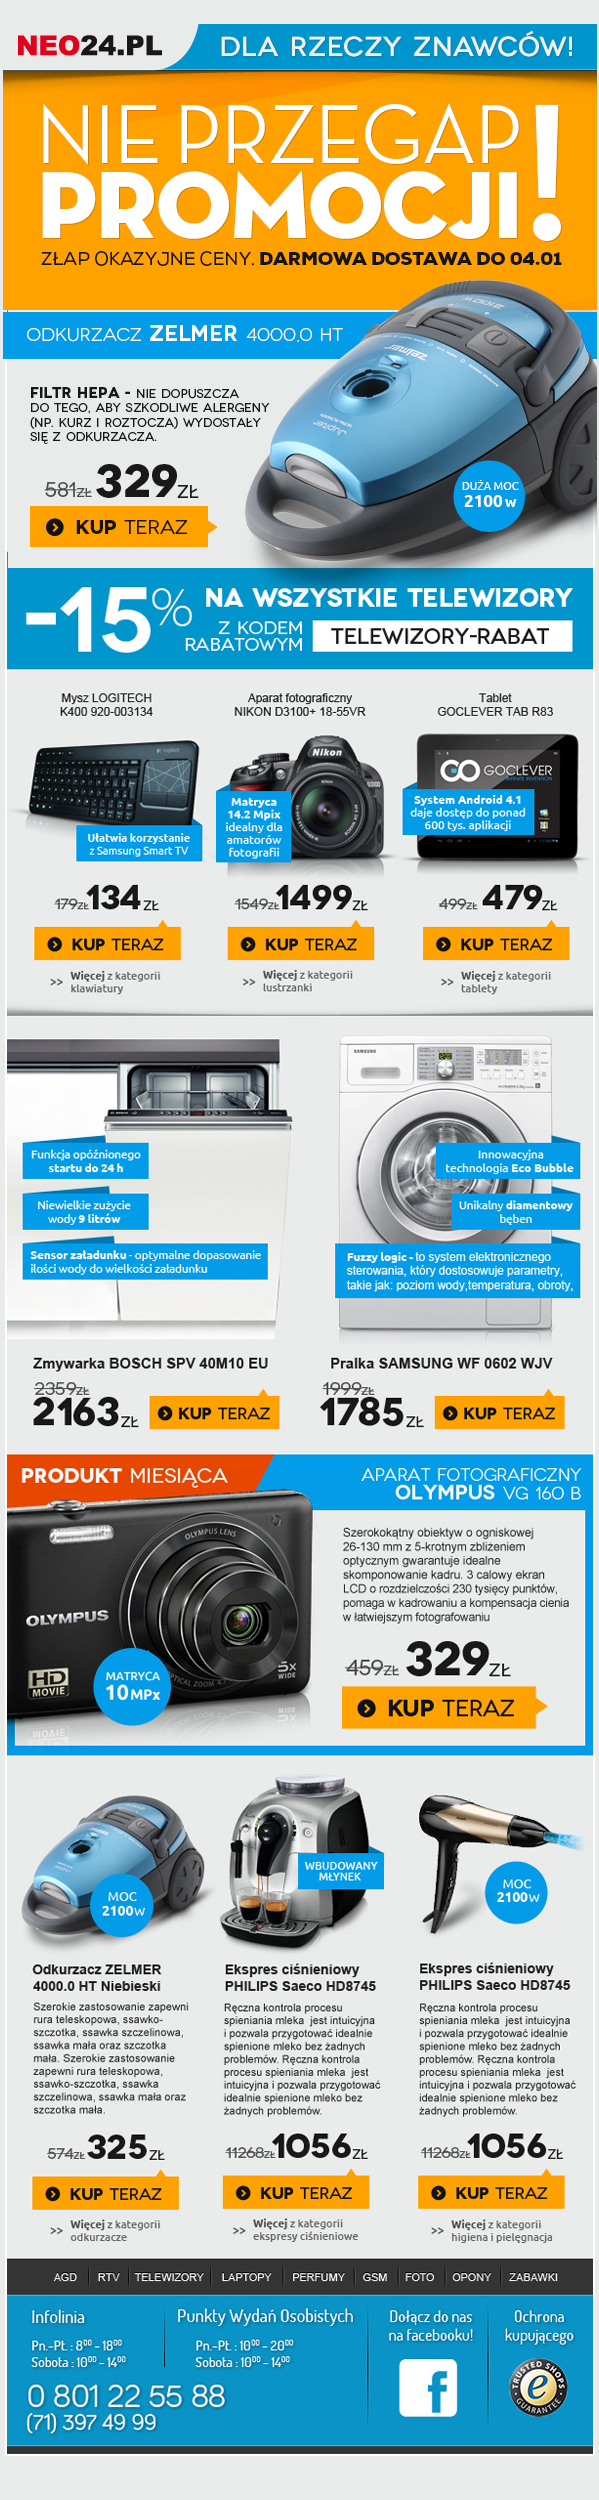 newsletter  e-mail  template  electronic  e-marketing  product adversting design